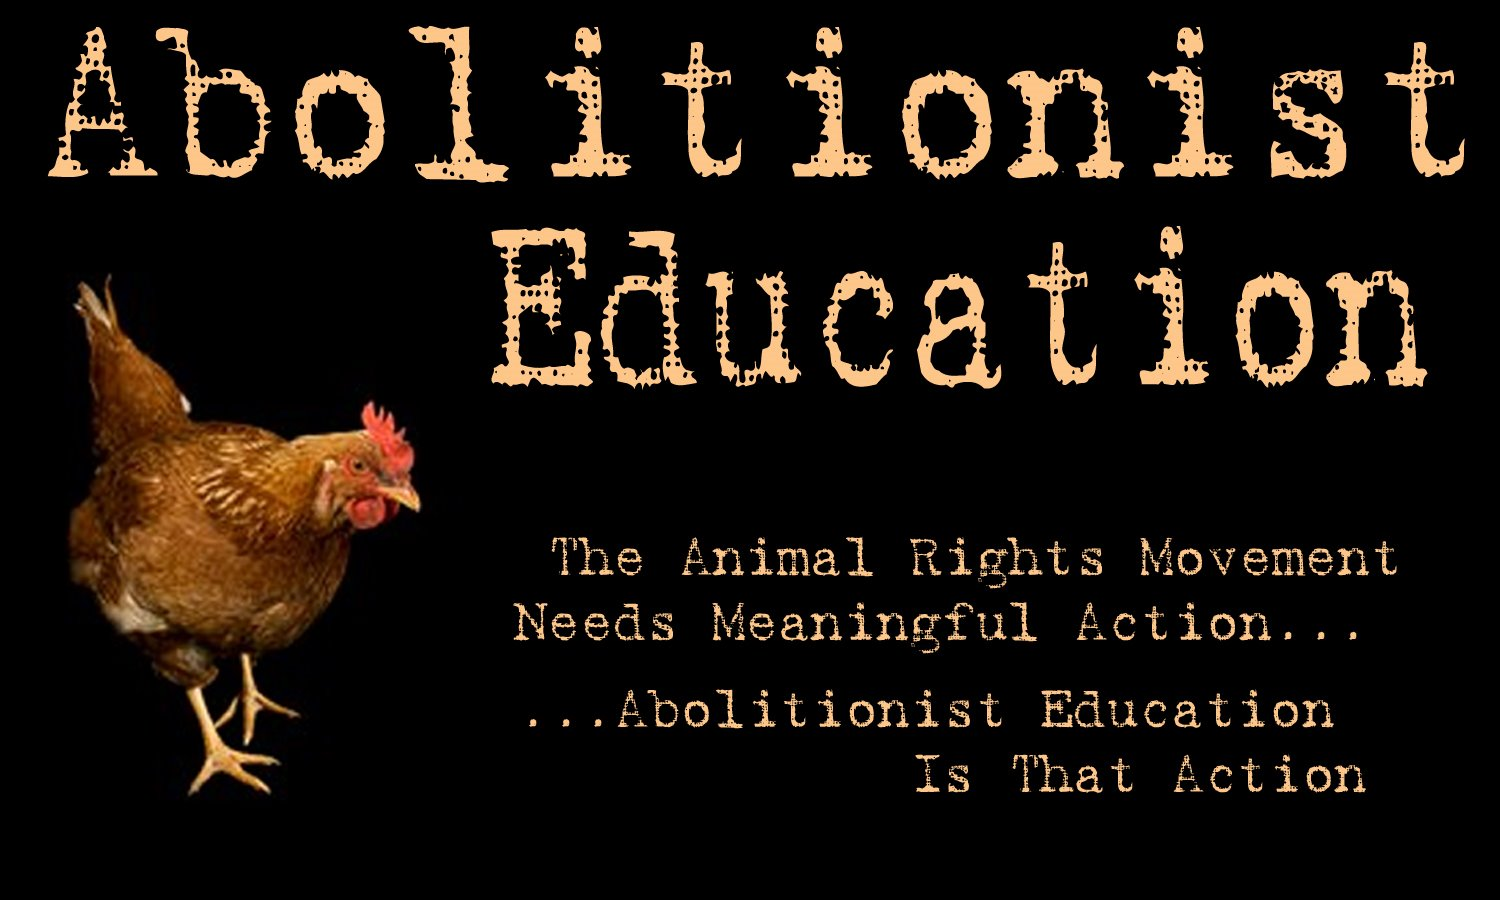 Abolitionist Education